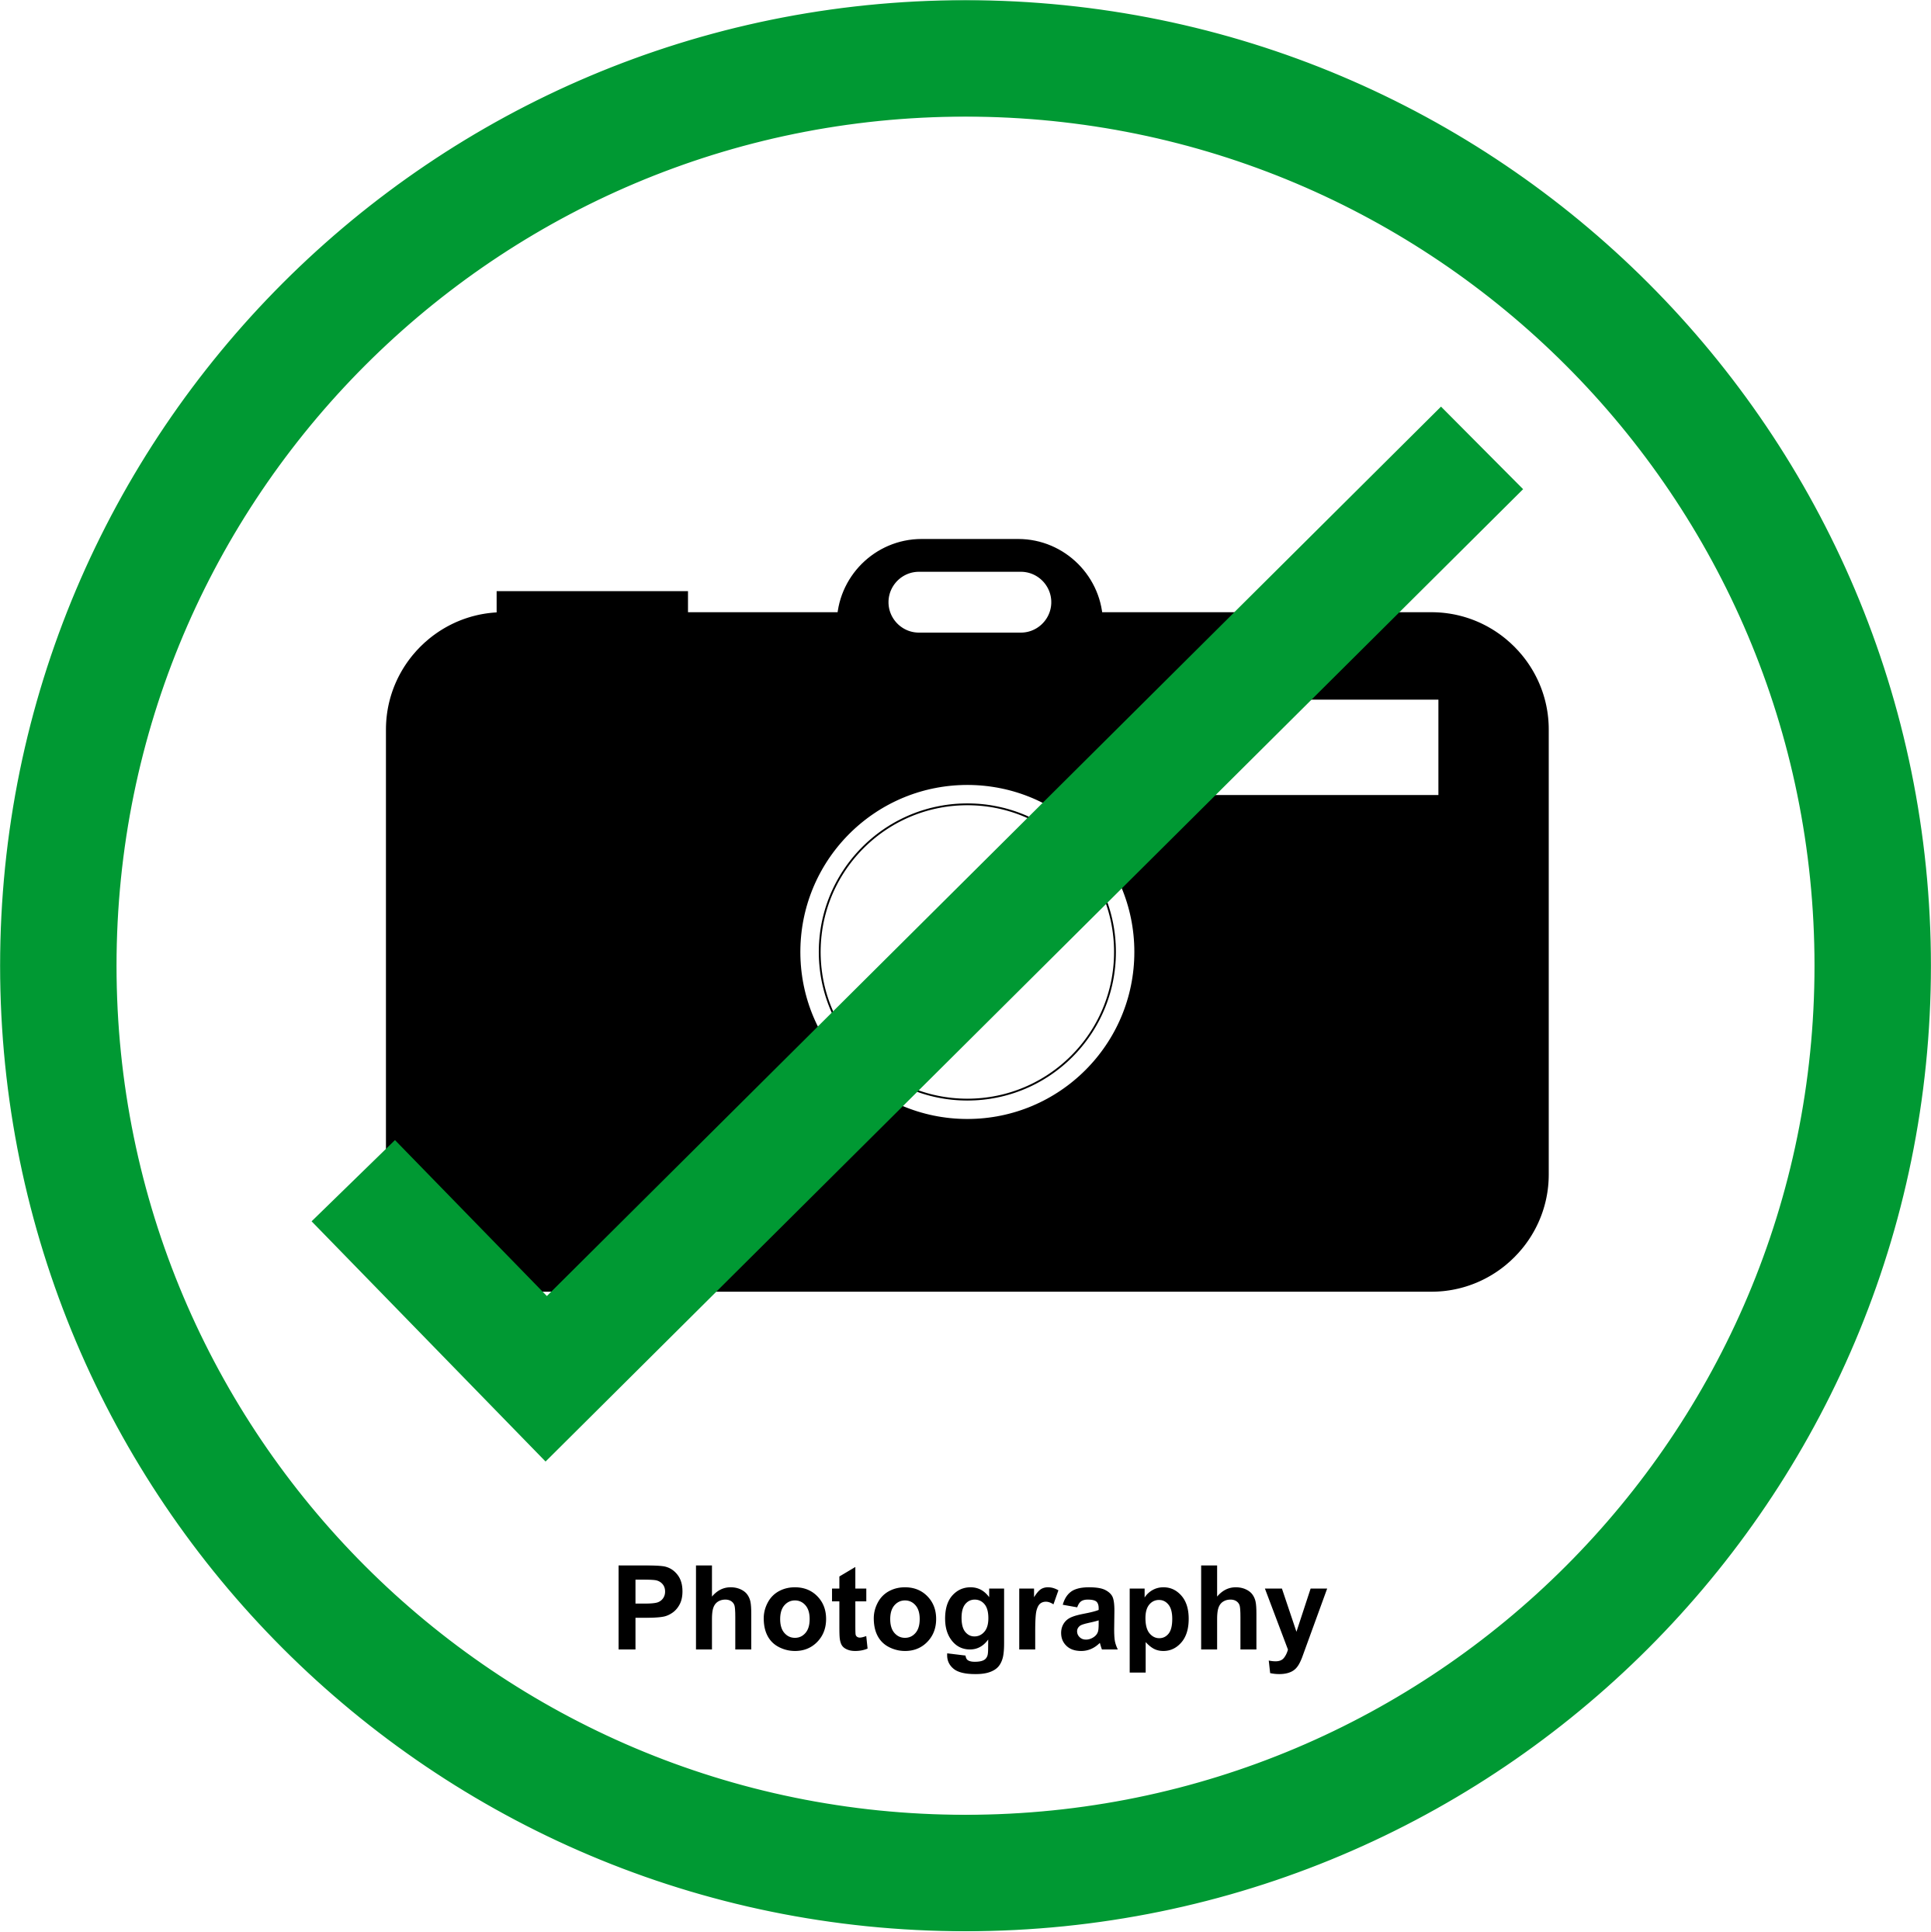 Permission sign for talks and posters at meetings to allow the work to be photographed.